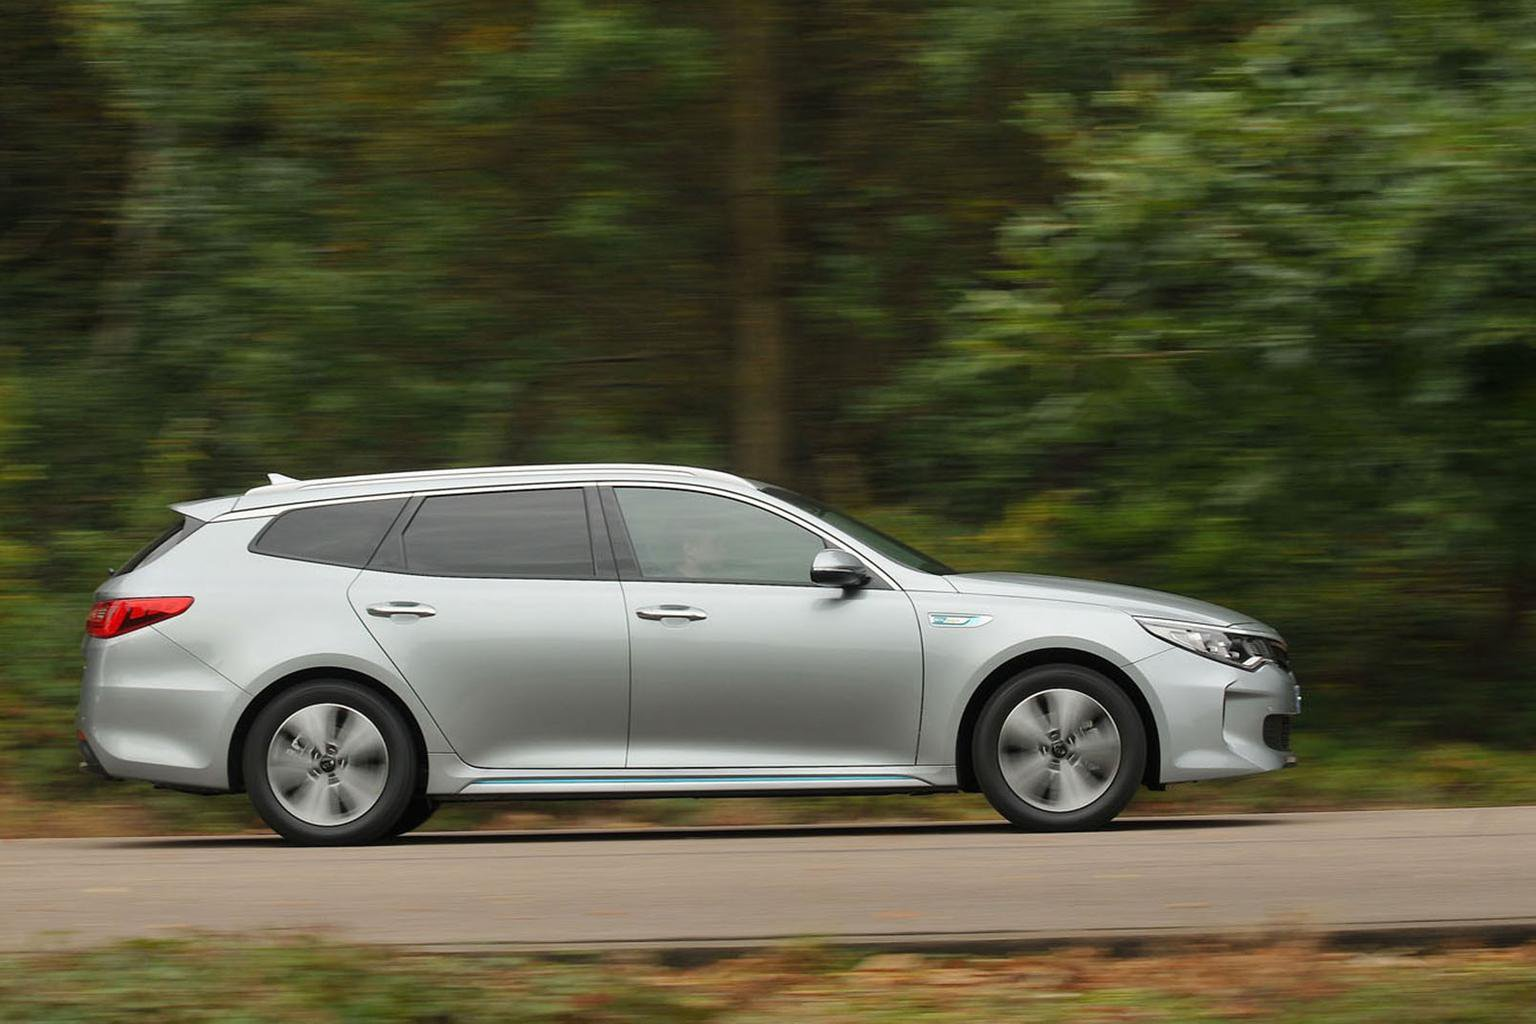 2017 Kia Optima Sportswagon PHEV review - price, specs and release date